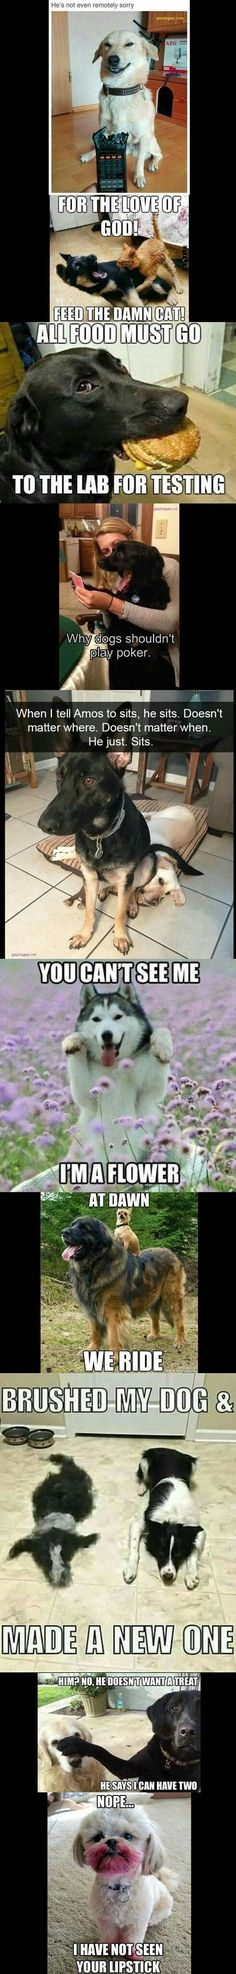 Top 10 Funny Pictures Of The Day ft. Funny Dogs - Funny Dog Quotes - Top 10 Funny Pictures Of The Day ft. Funny Dogs The post Top 10 Funny Pictures Of The Day ft. Funny Dogs appeared first on Gag Dad. Funny Animal Jokes, Really Funny Memes, Cute Funny Animals, Stupid Funny Memes, Haha Funny, Funny Cute, Funny Dogs, Super Funny, Hilarious